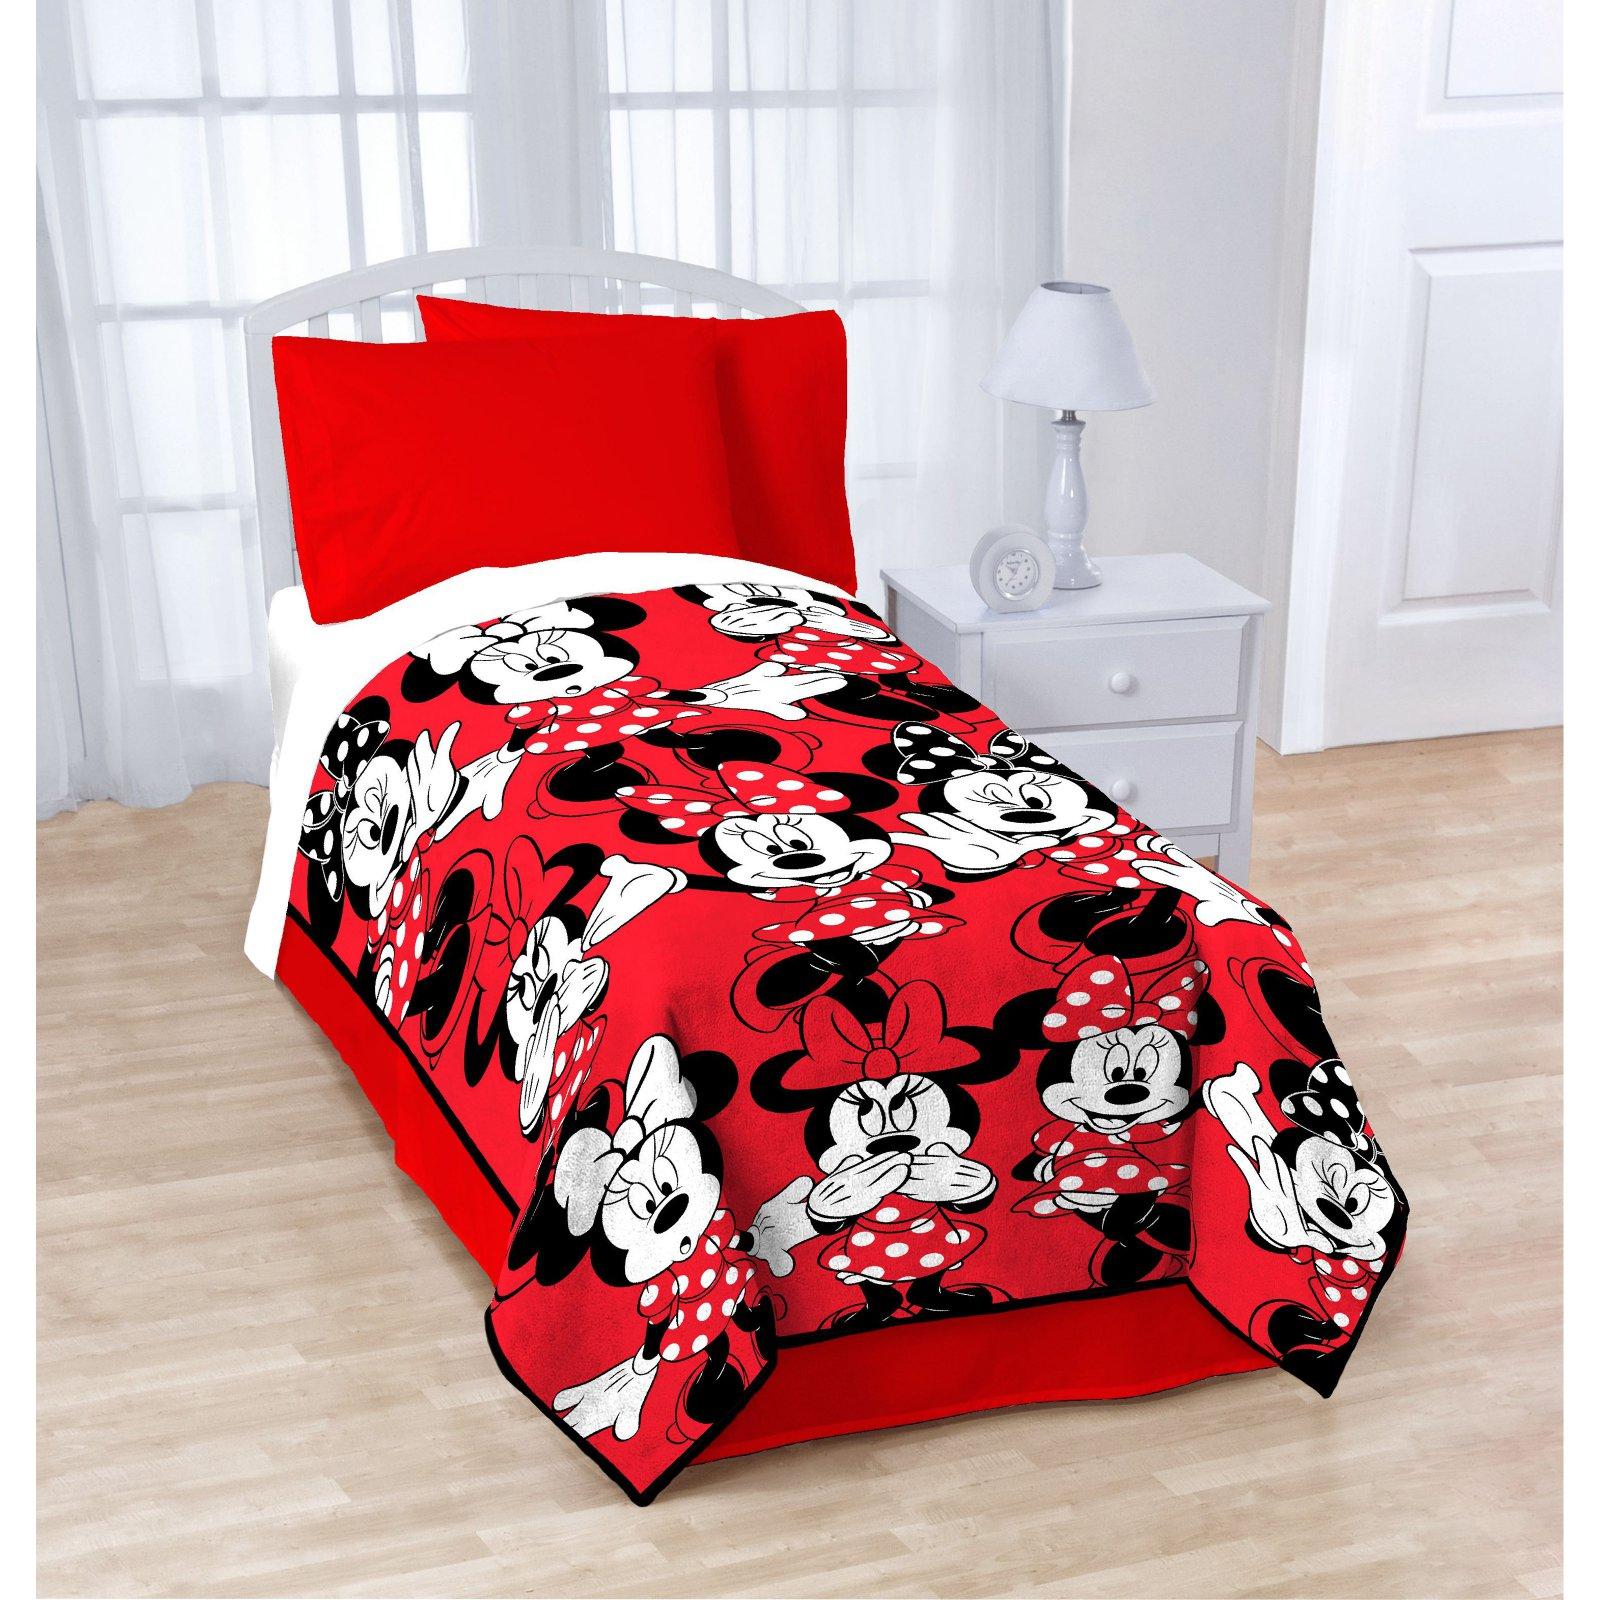 Minnie Mouse Classic Who Twin Blanket by Disney